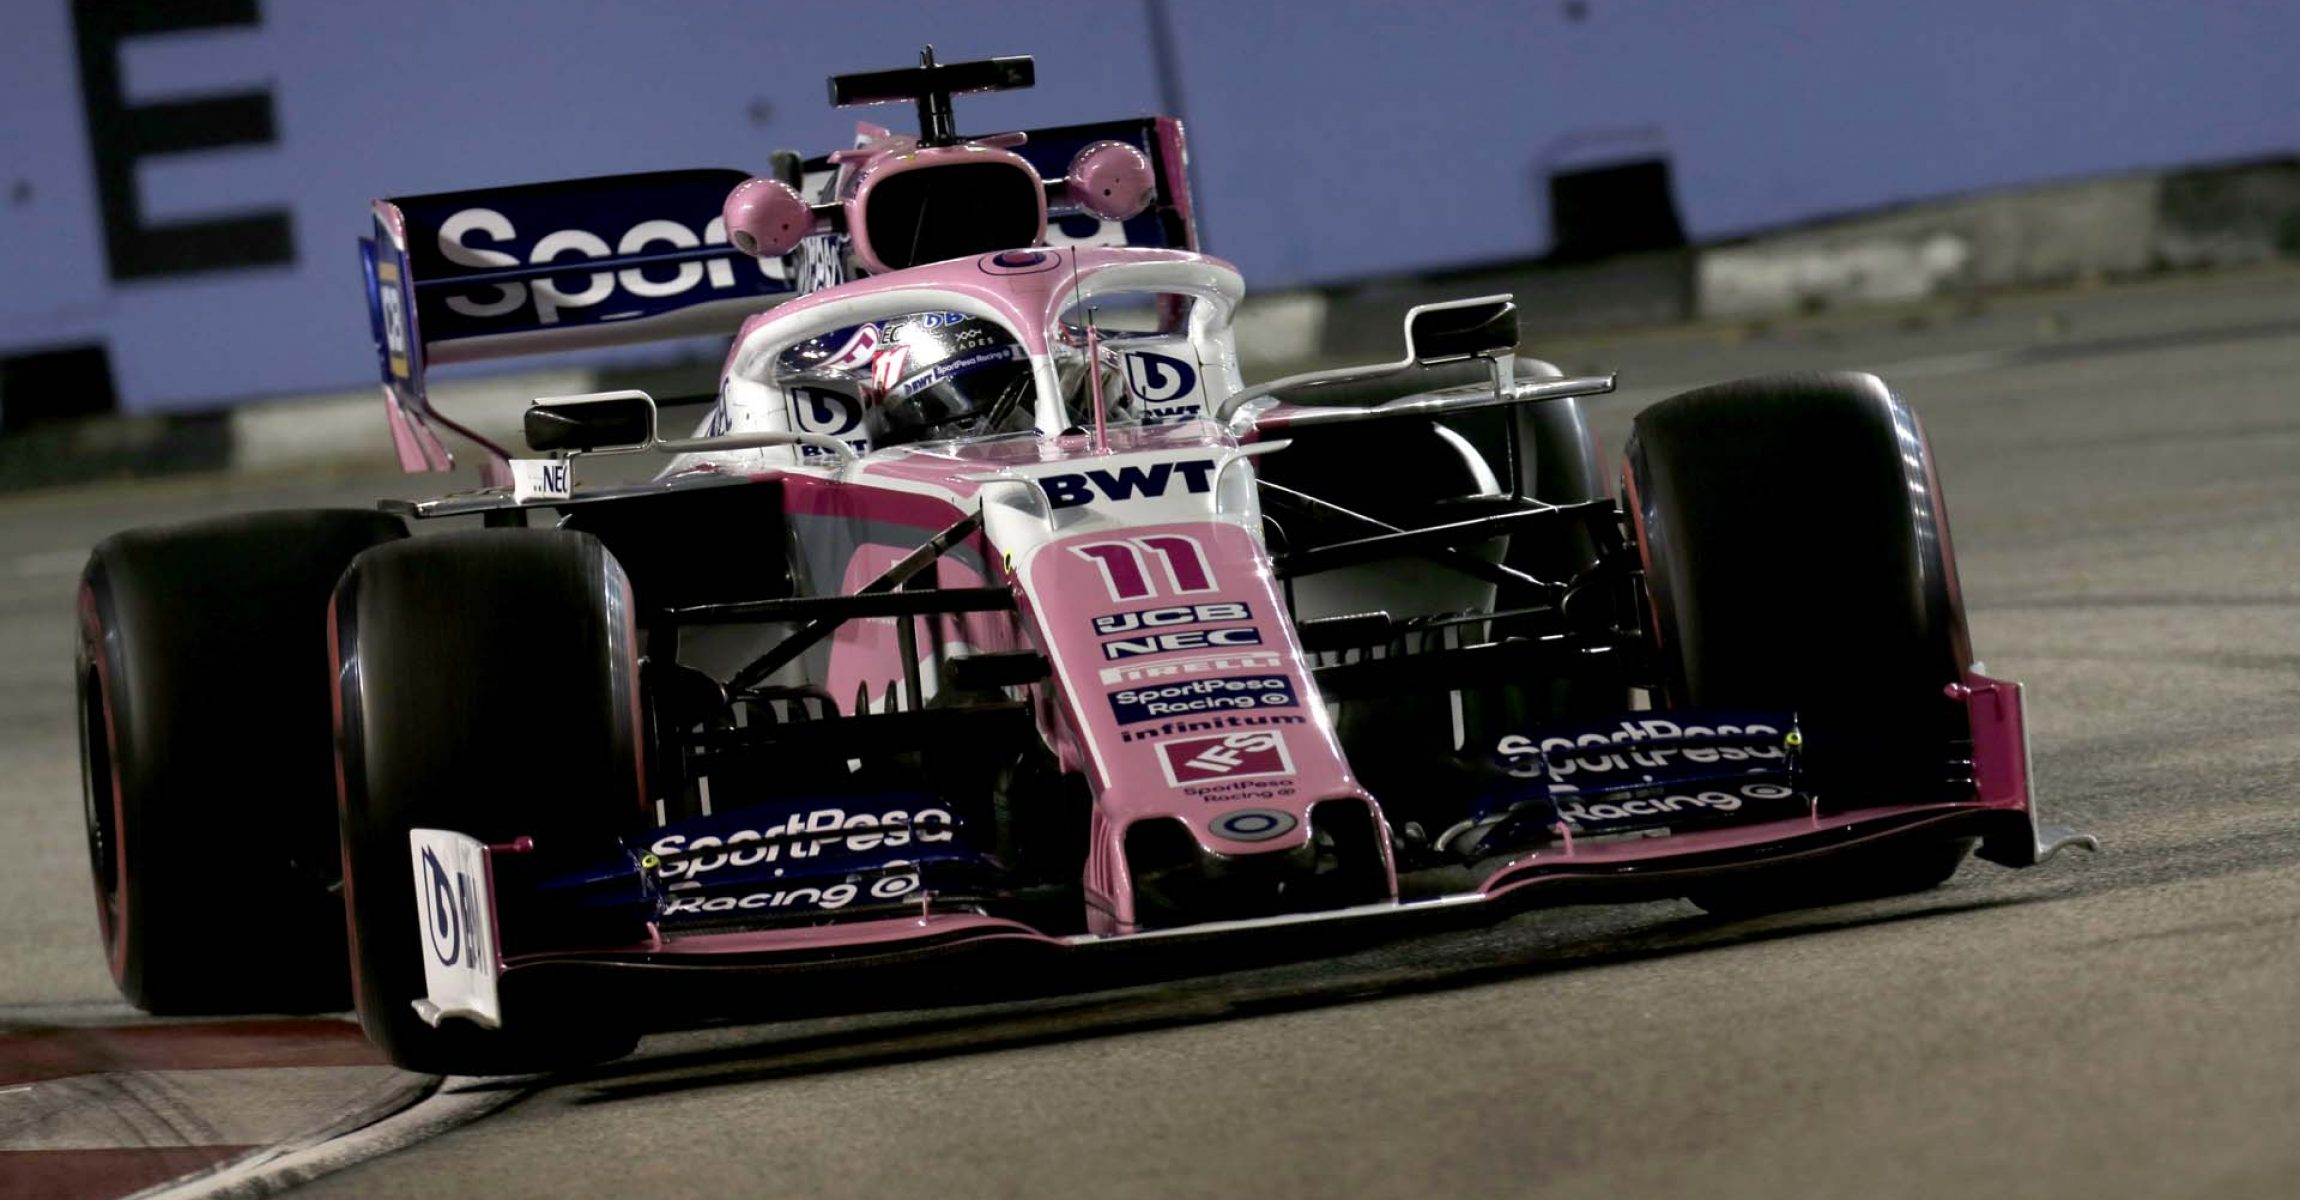 Sergio Perez, Racing Point RP19 during FP2